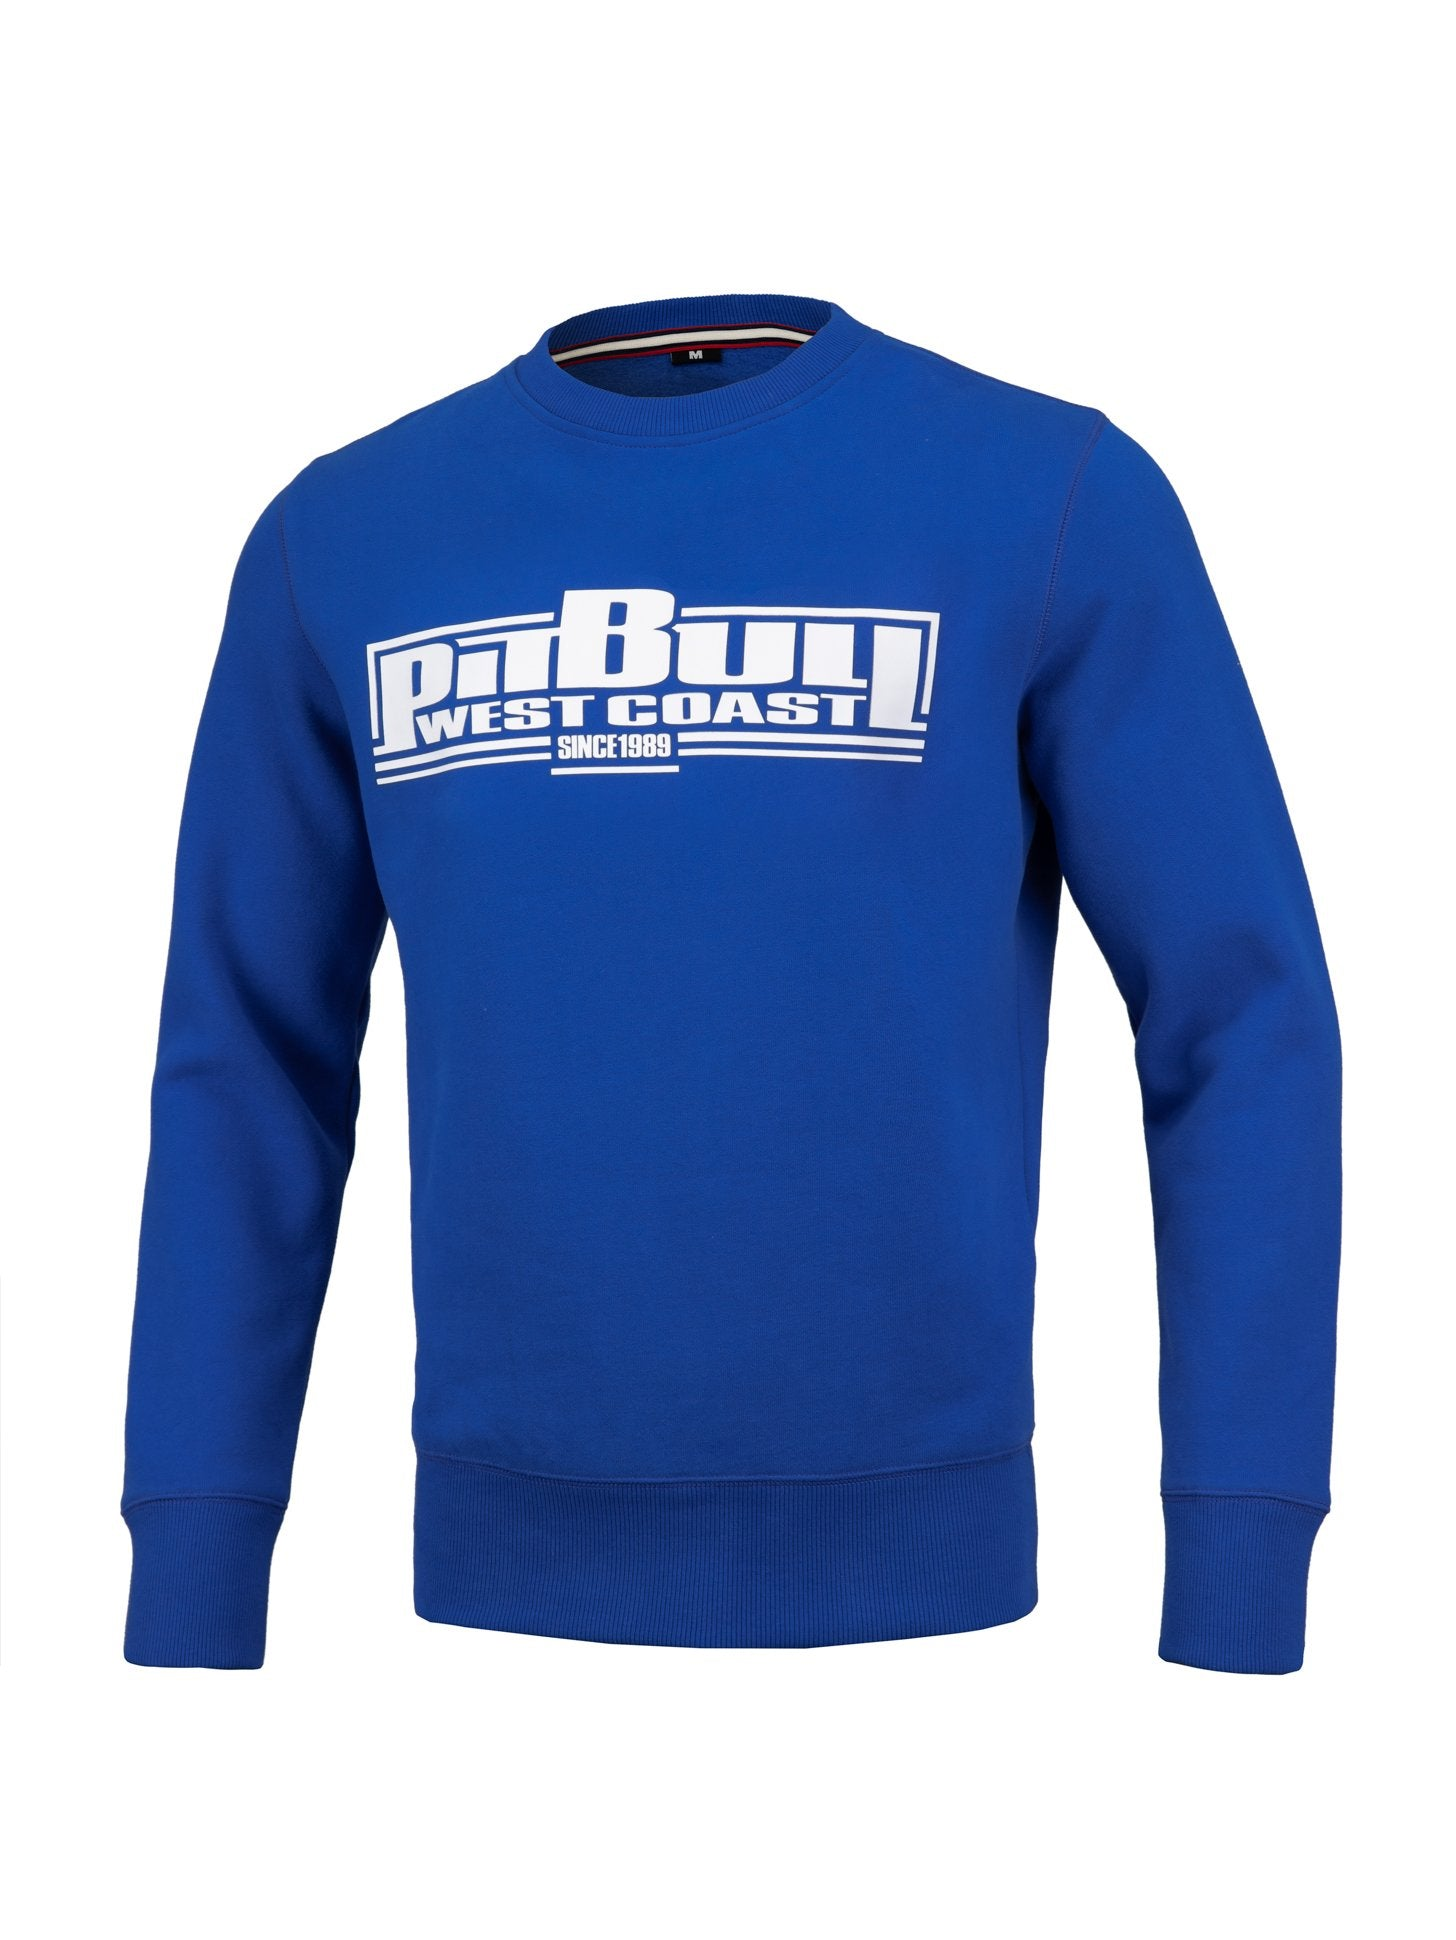 Crewneck Boxing 19 Royal Blue - pitbullwestcoast